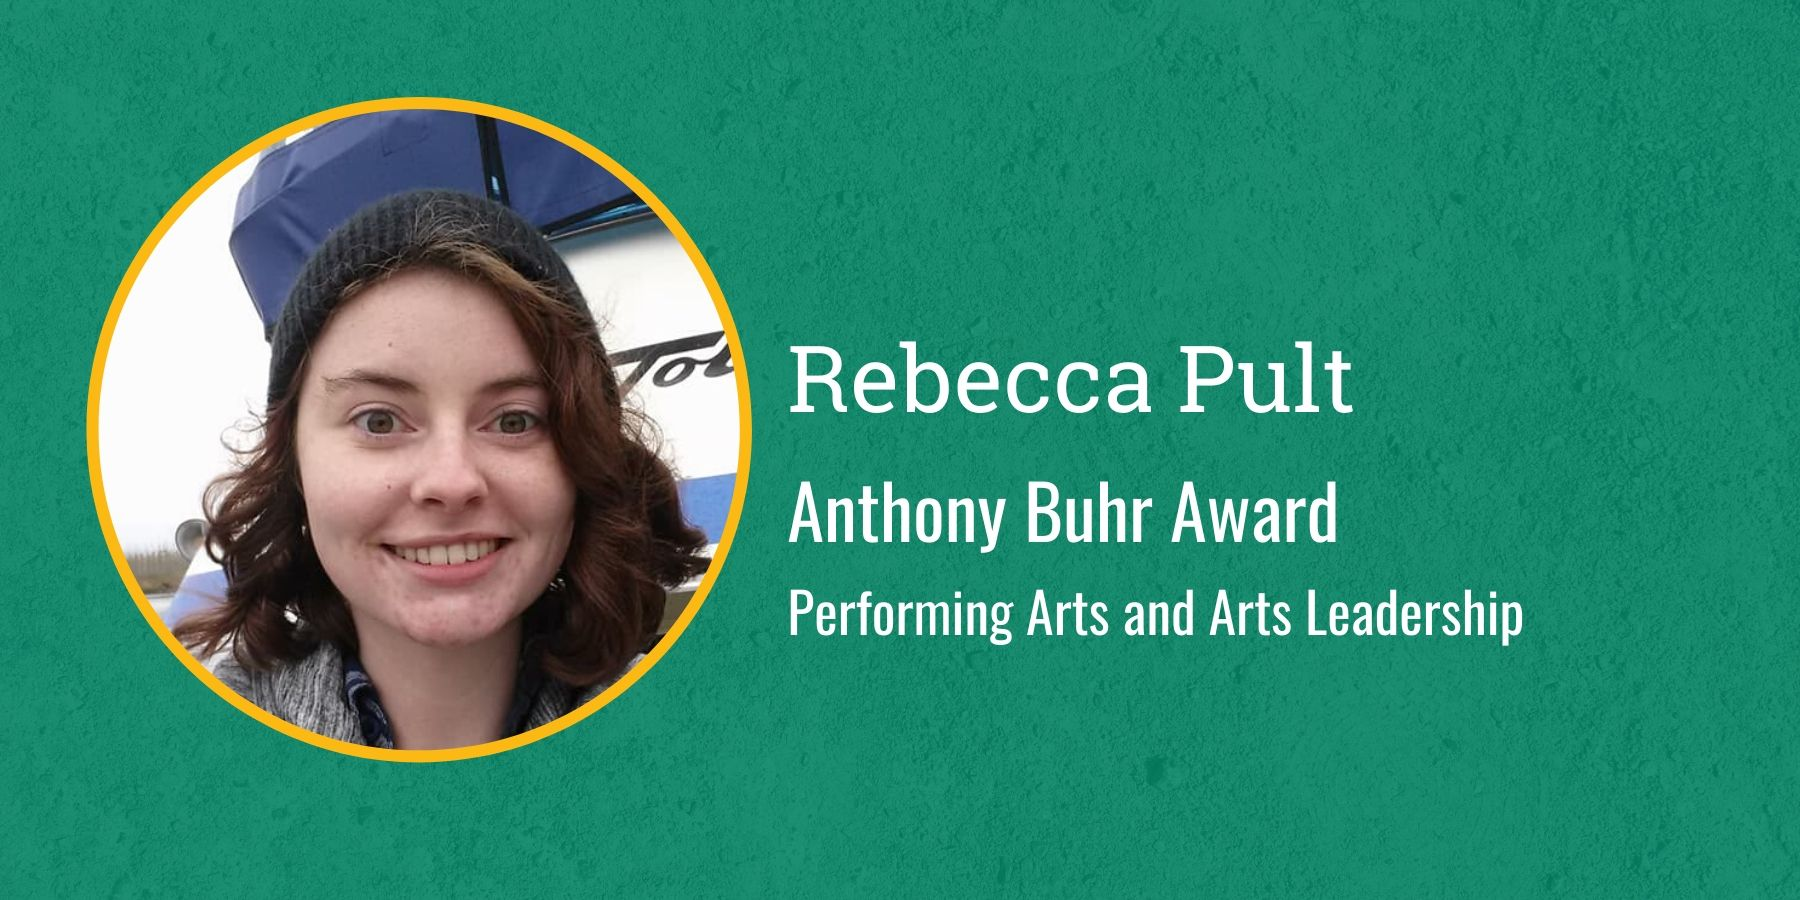 Photo of Rebecca Pult and text Anthony Buhr Award, Performing Arts and Arts Leadership